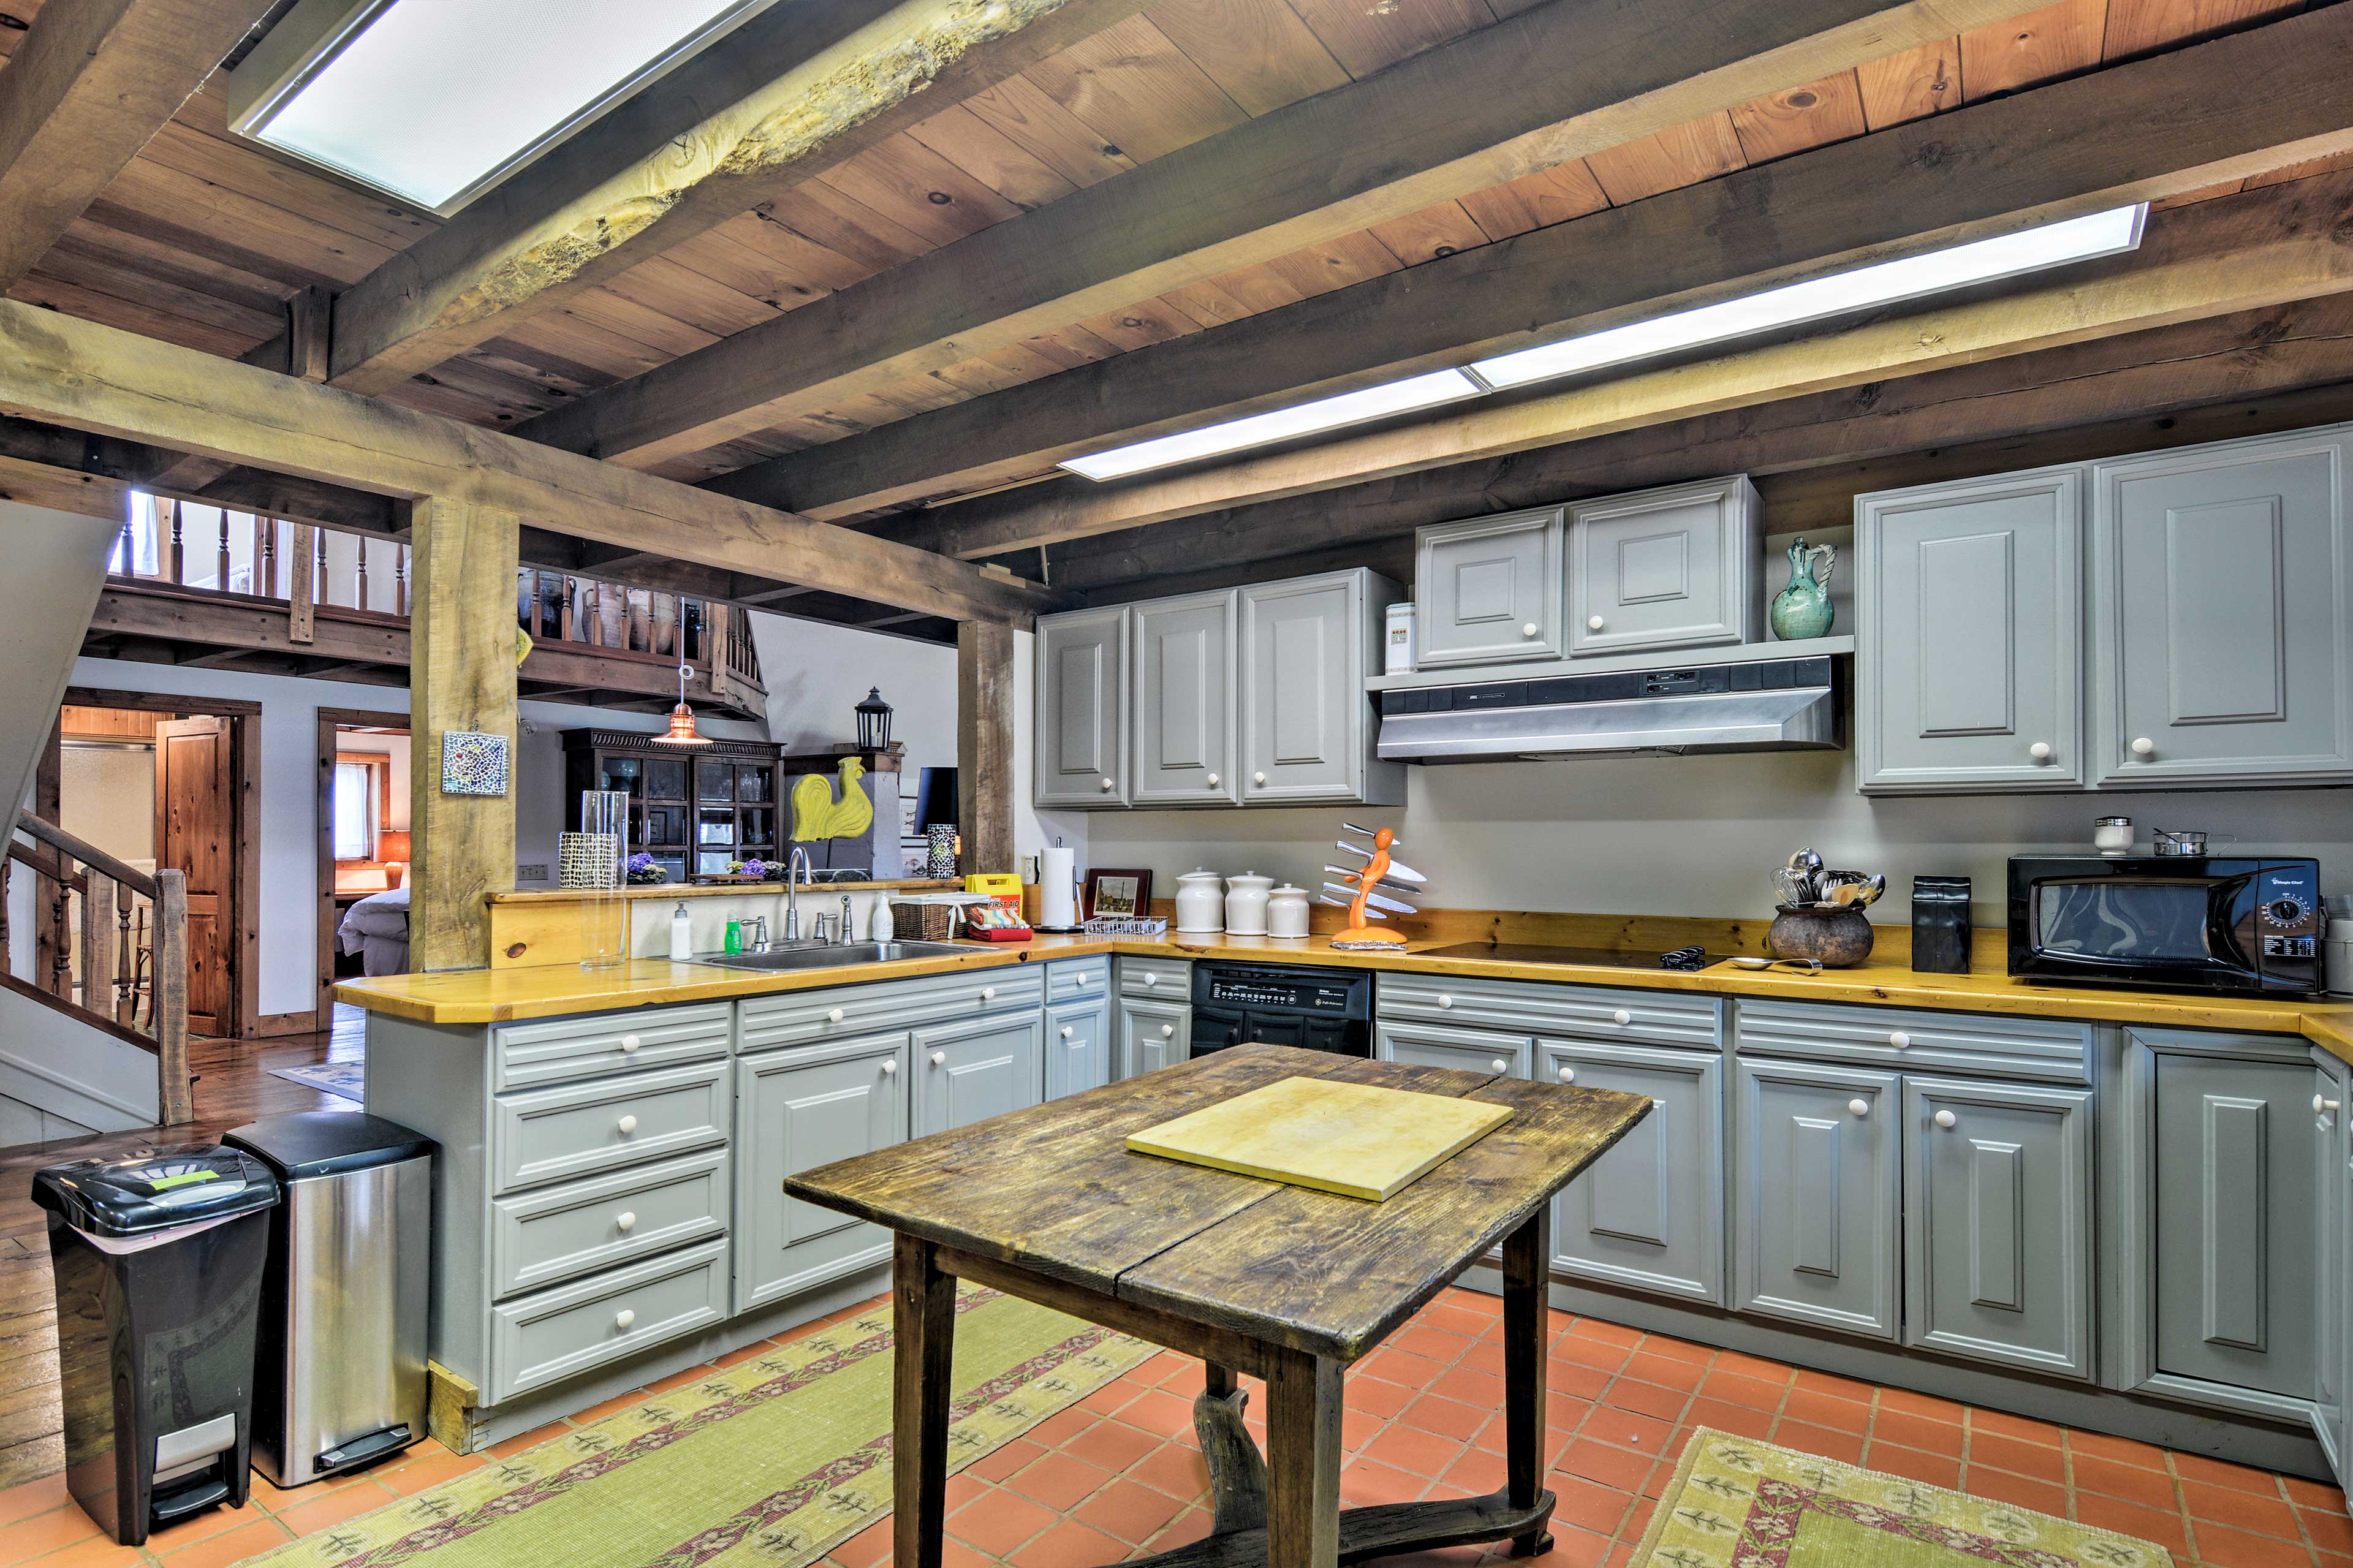 The large, fully equipped kitchen makes skipping the dinner bill simple.